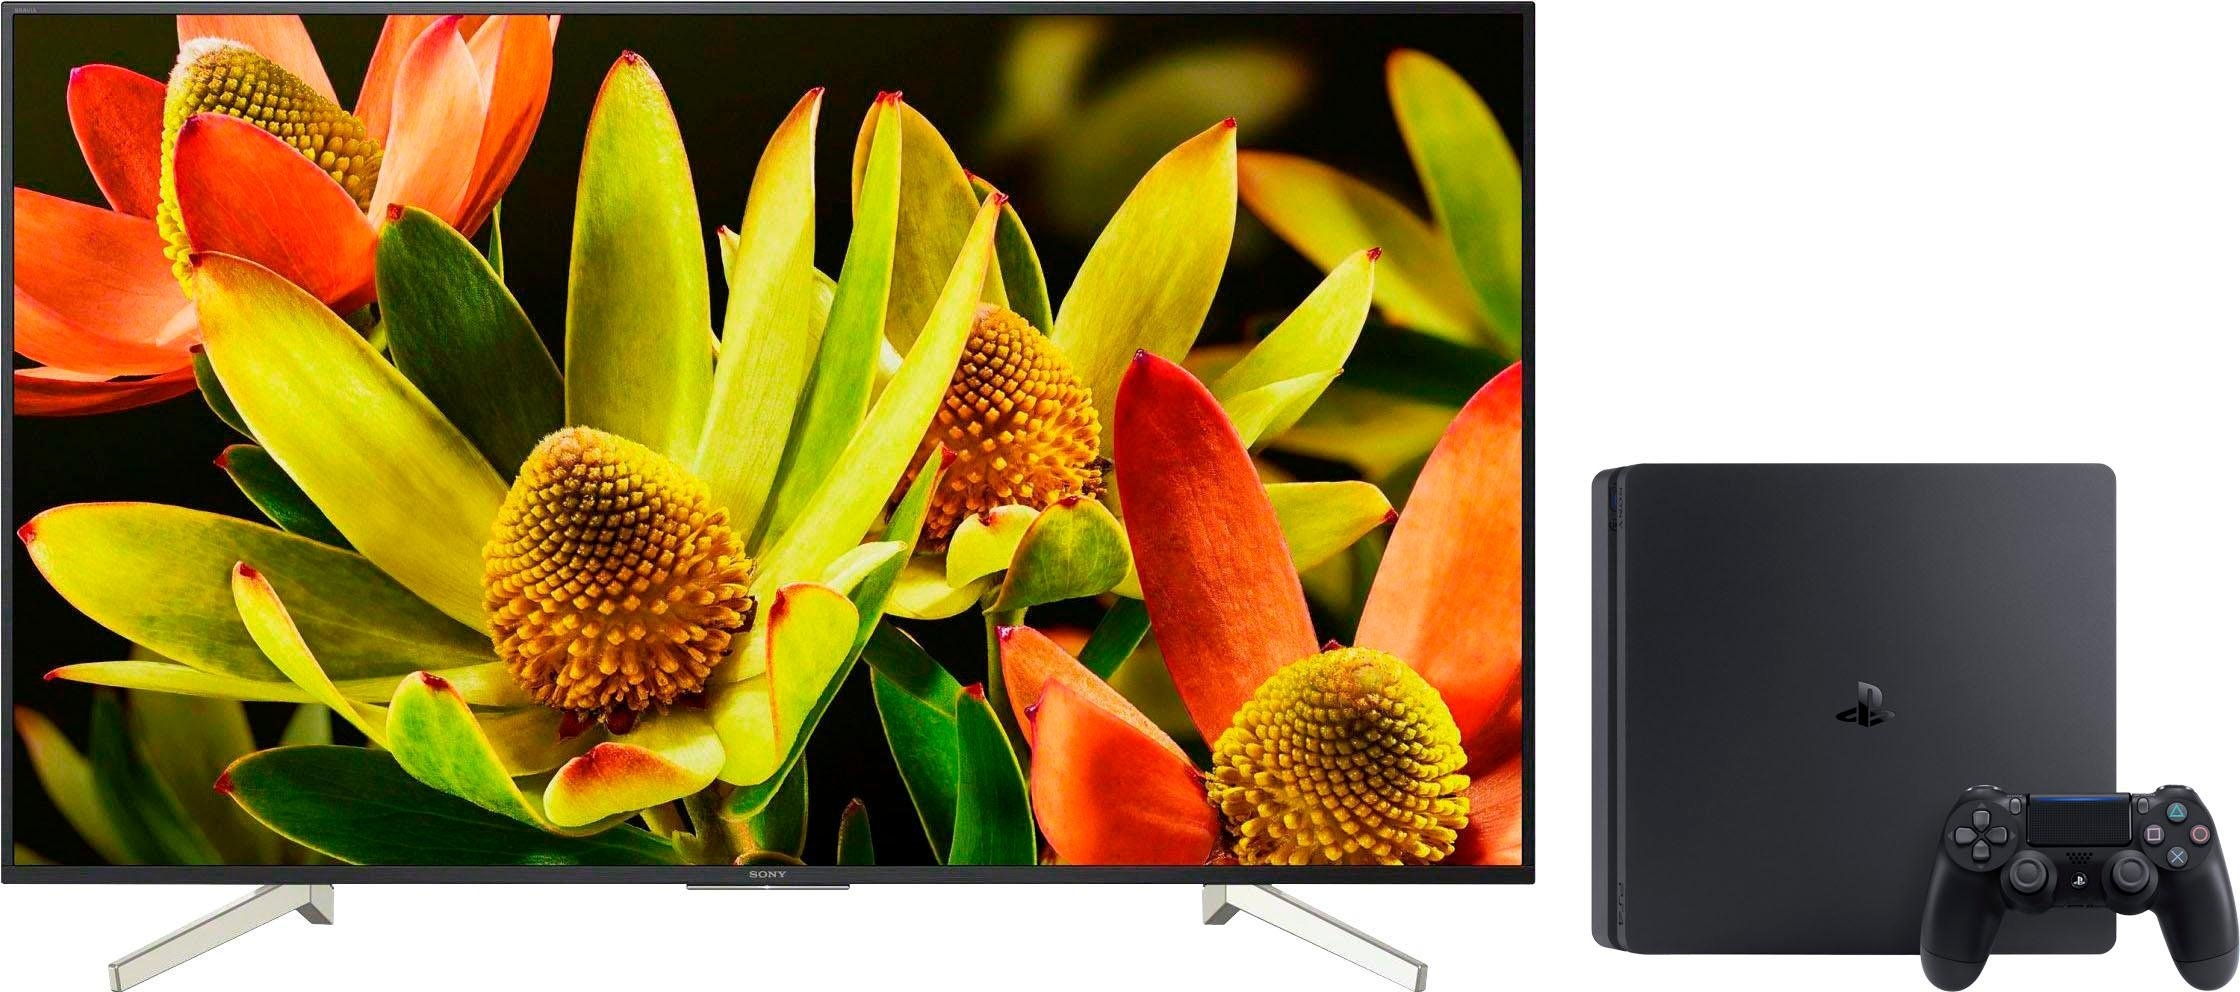 SONY KD60XF8305 + PS4 Slim console 500GB led-tv (60 inch), 4K Ultra HD, smart-tv online kopen op otto.nl